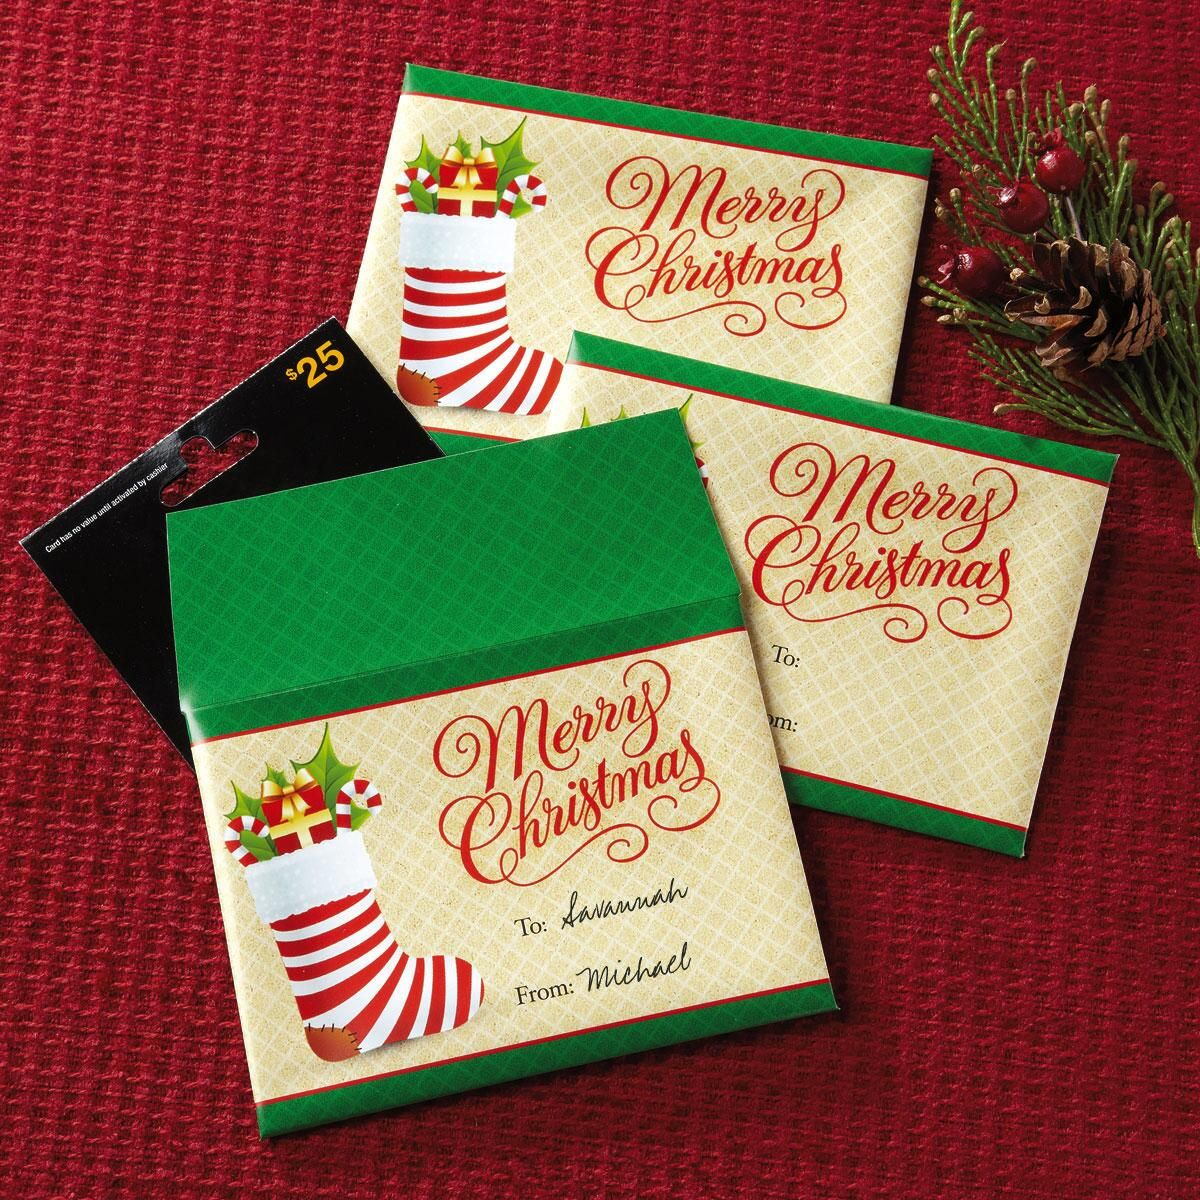 Stockings Gift Card Envelopes